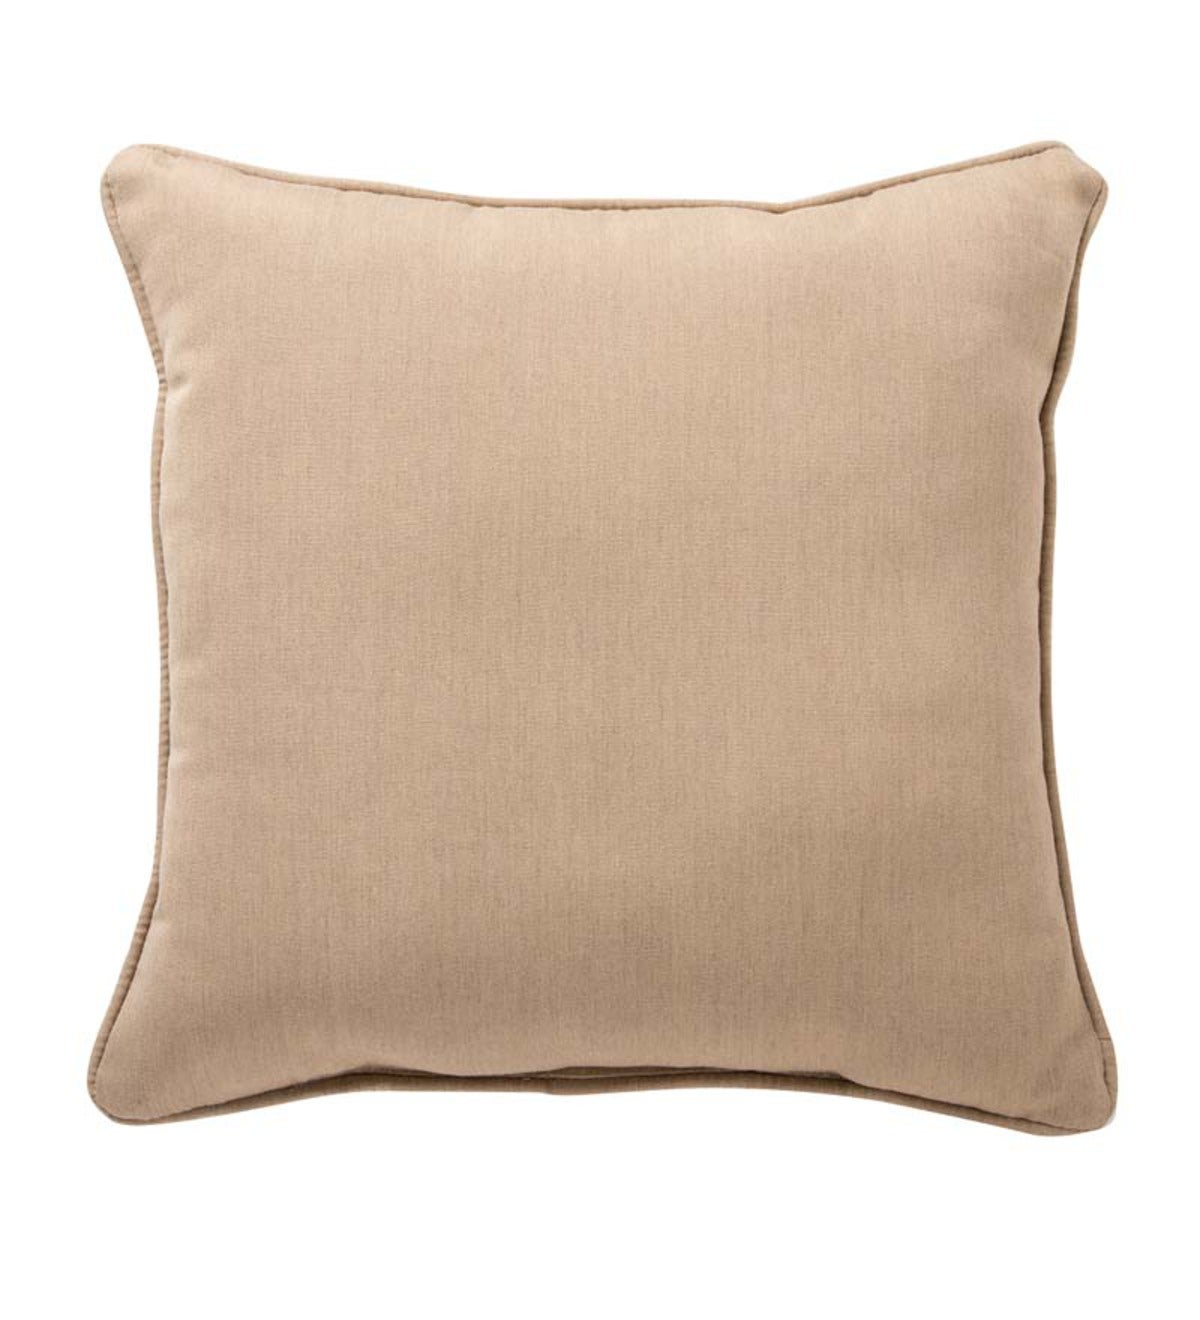 "15""sq. Sunbrella™ Deluxe Throw Pillow - Heather Beige"